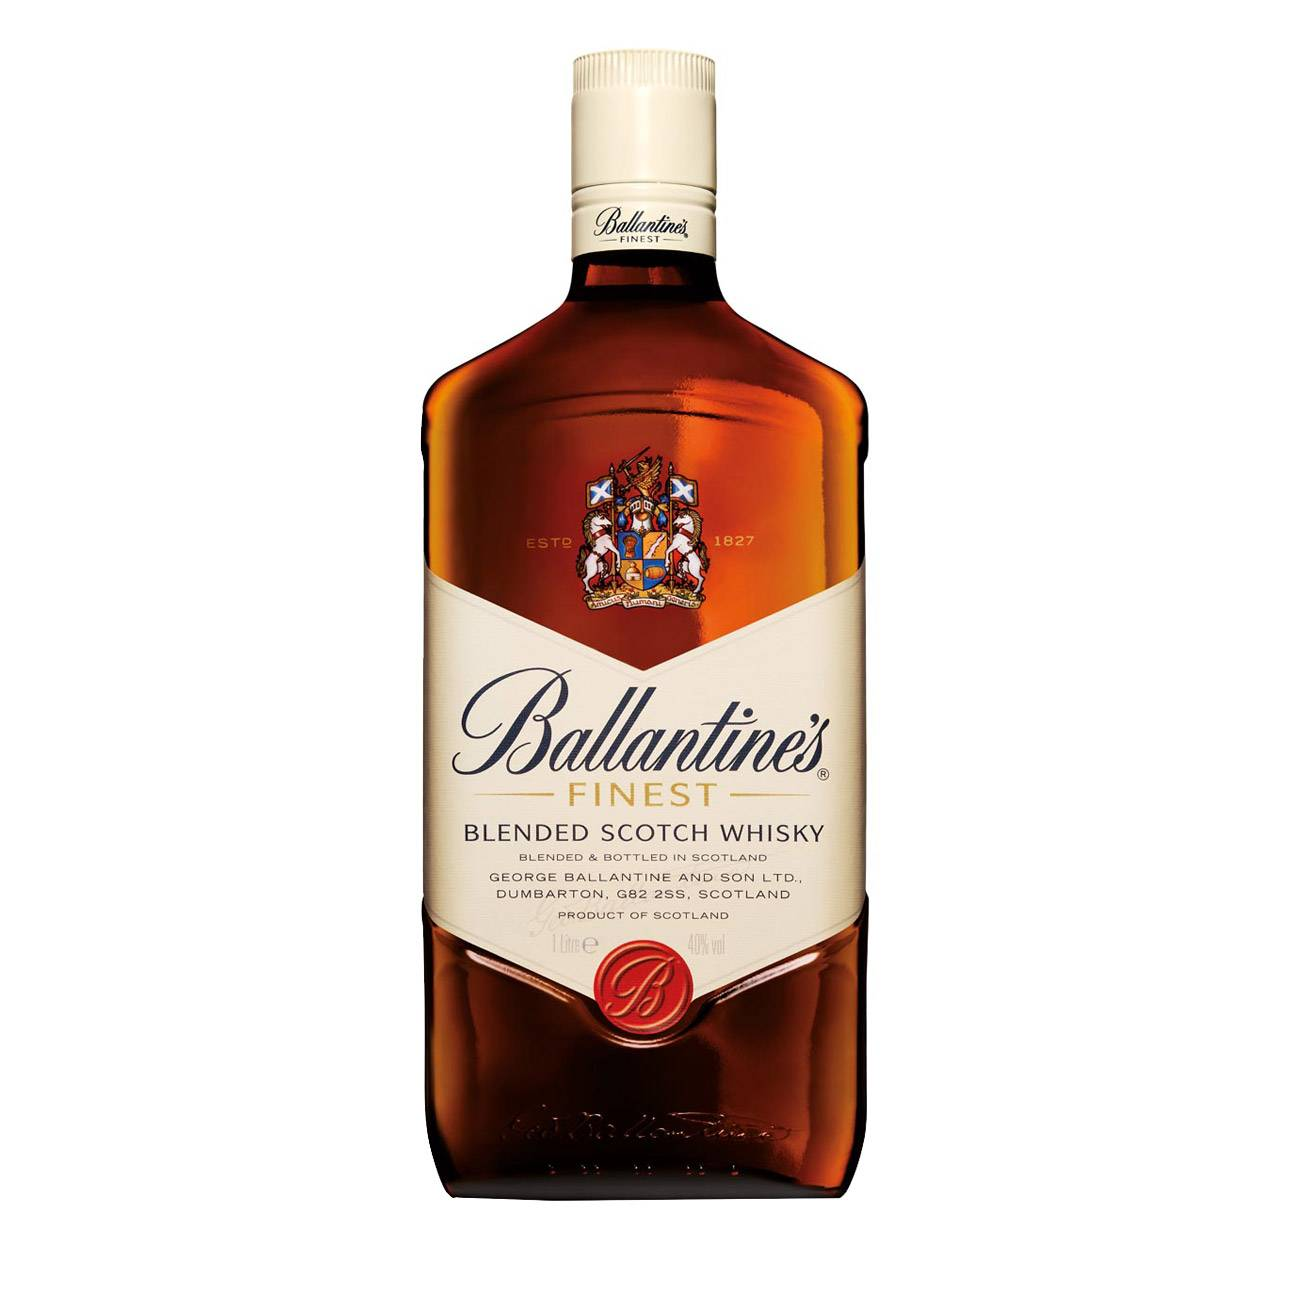 Whisky scotian, FINEST BLENDED SCOTCH EOY 2017 1000 Ml, Ballantine's